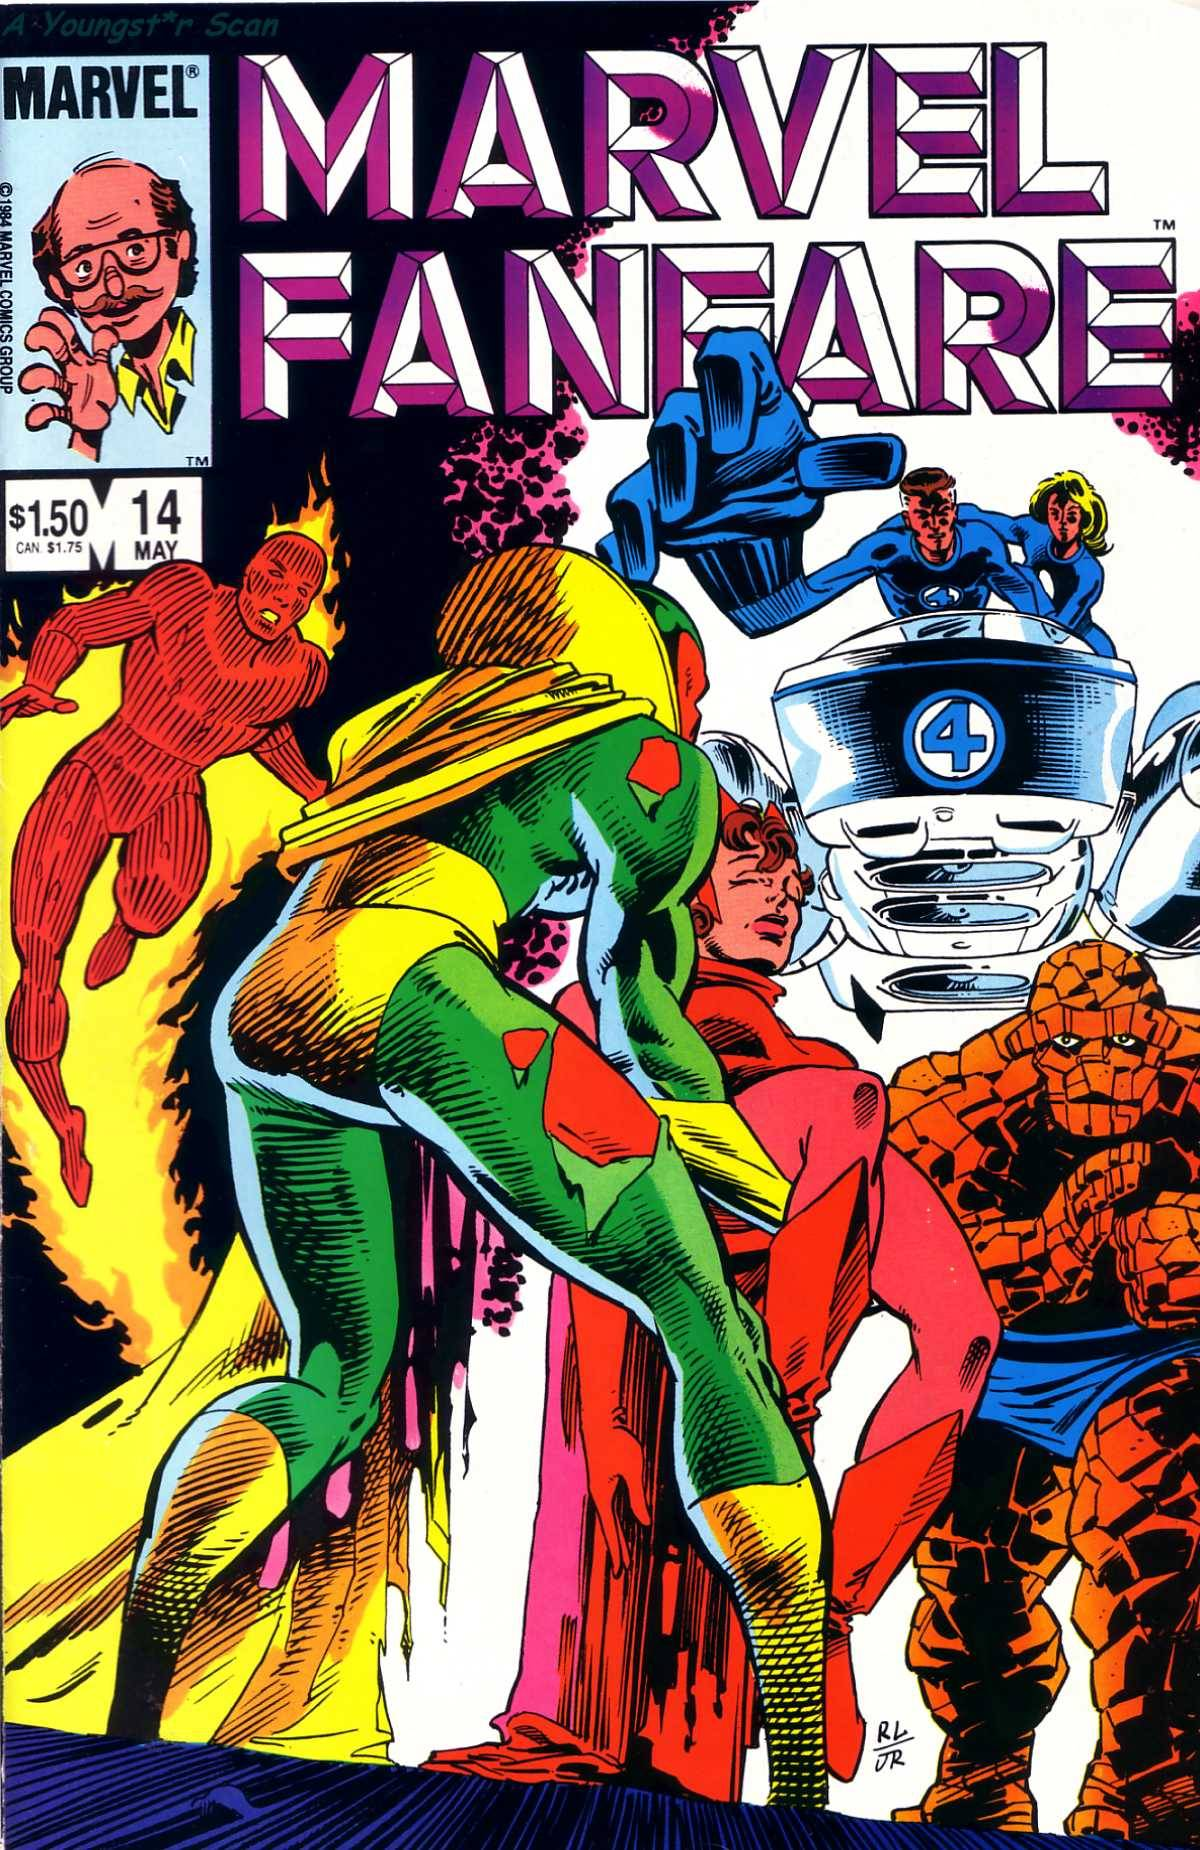 The cover of Marvel Fanfare #14 starring the Vision's butt!